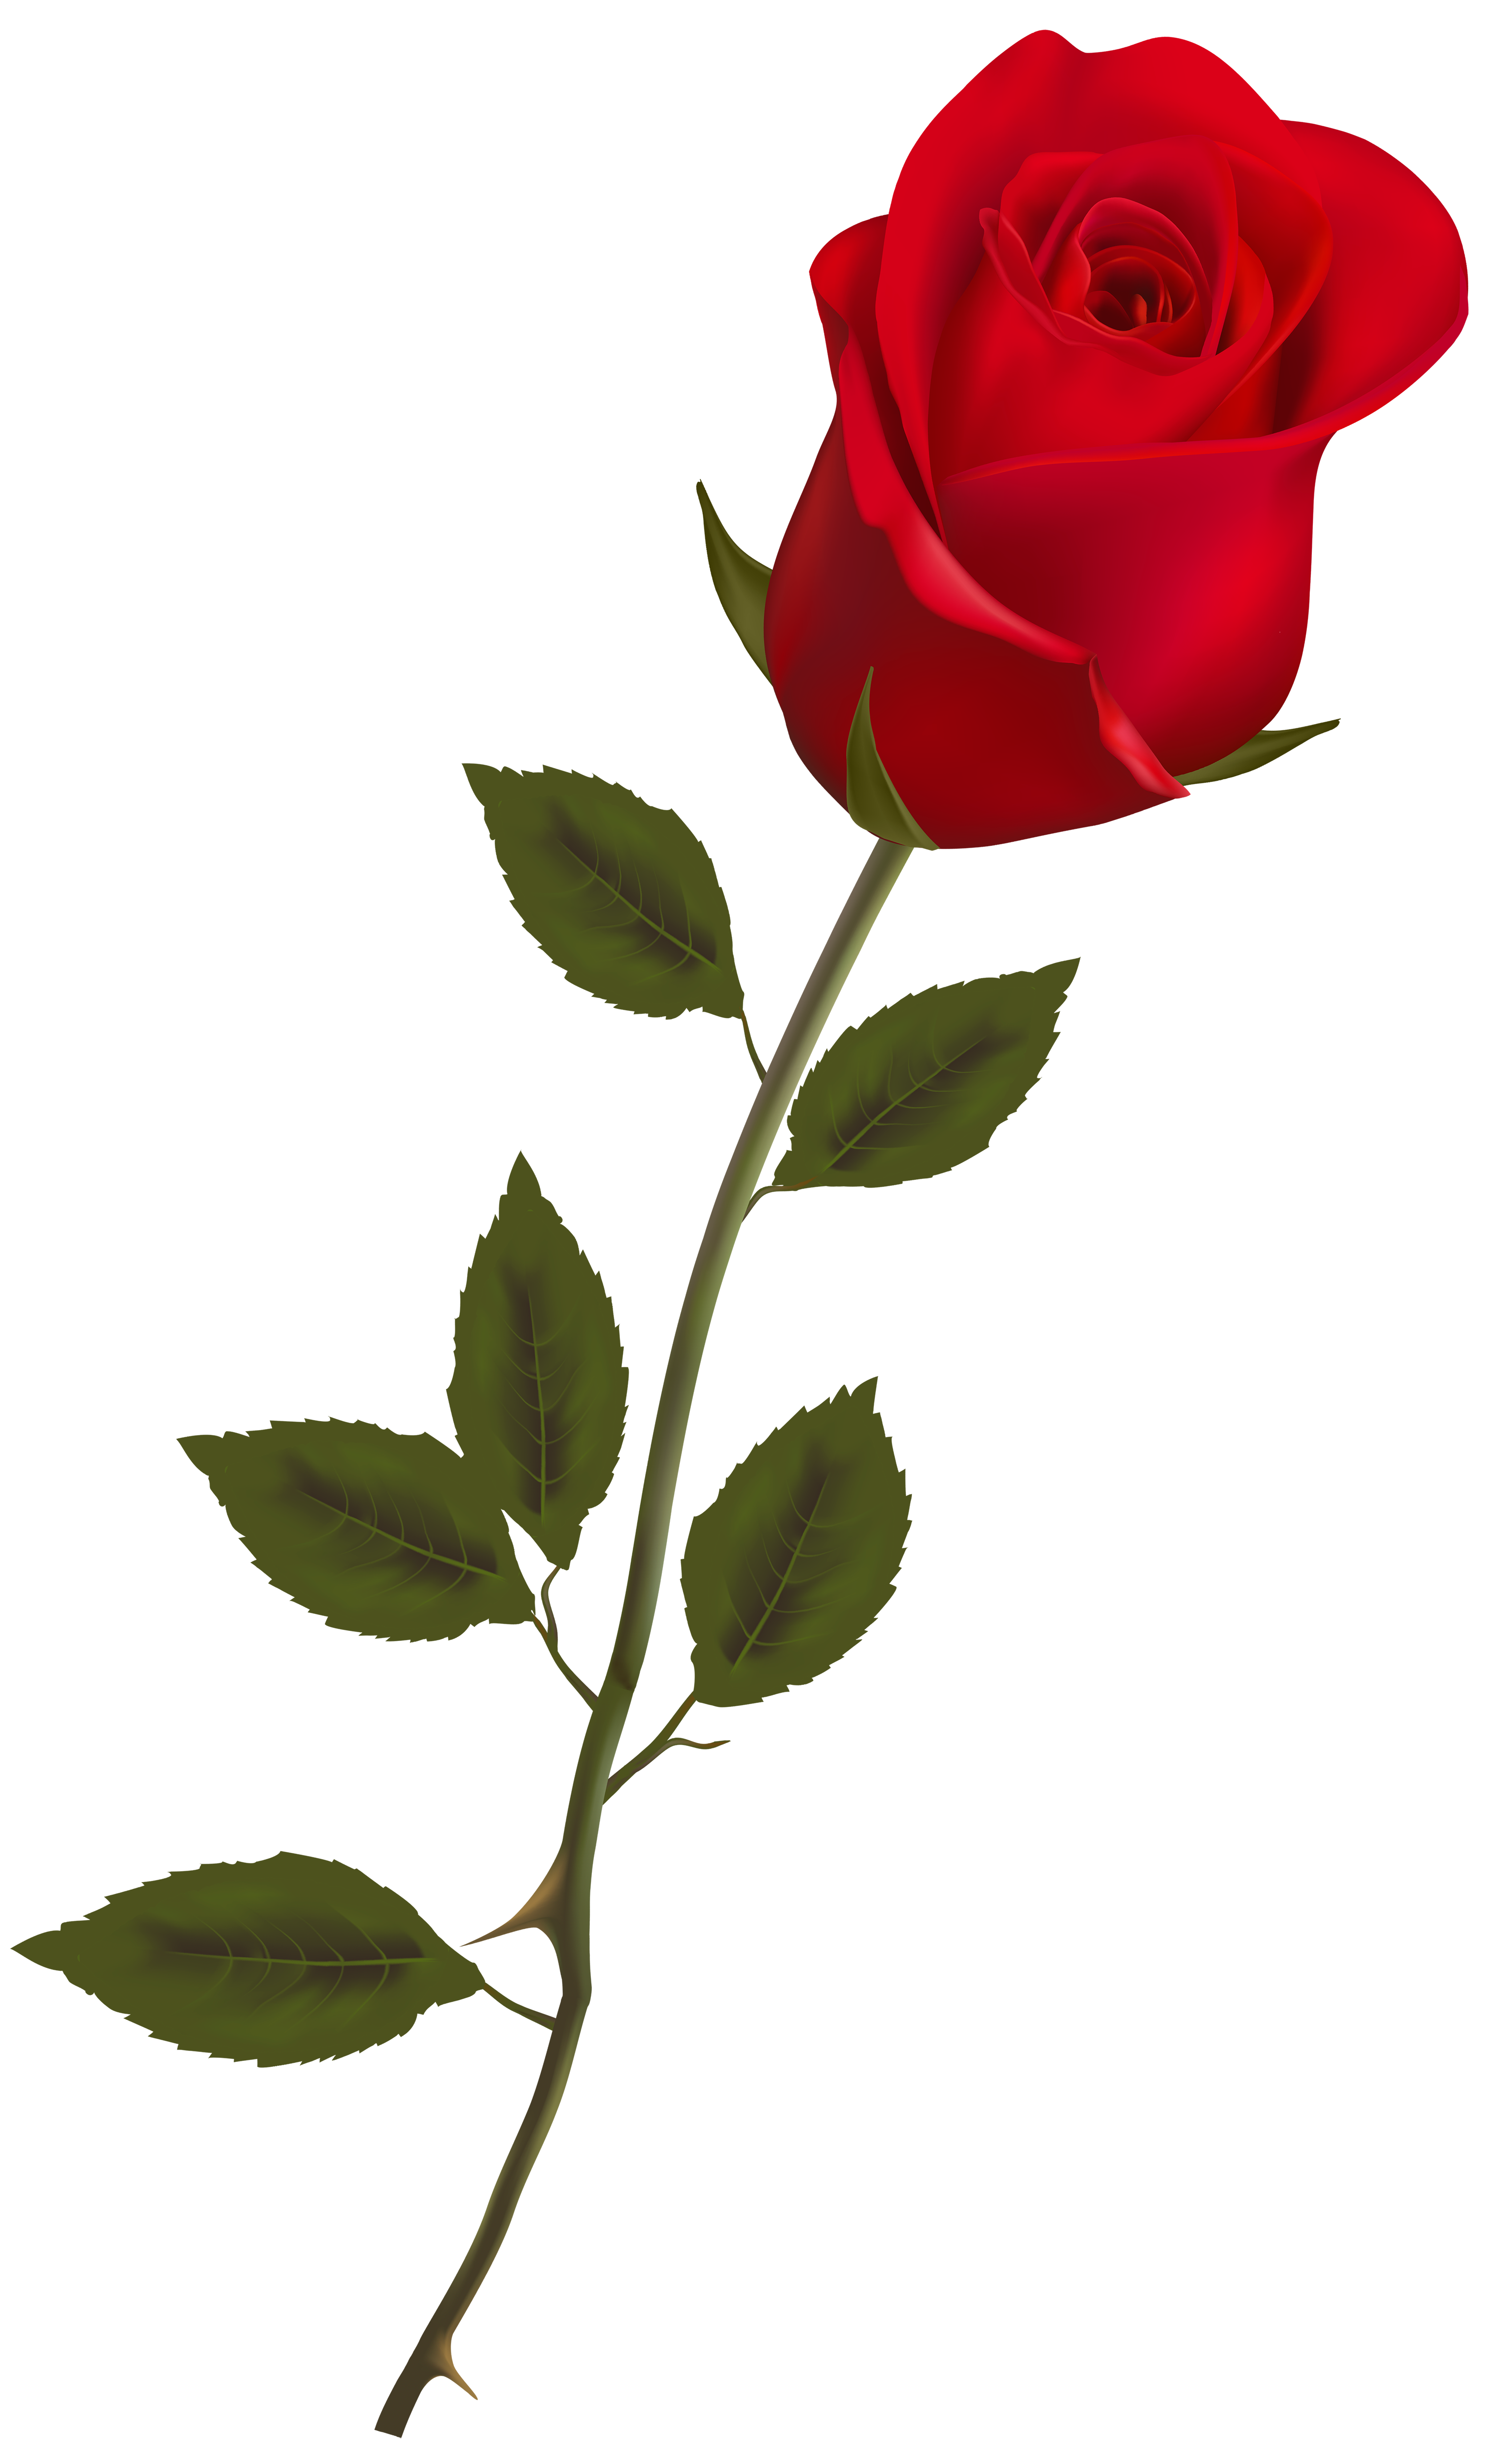 beautiful stem red rose png clipart wallpaper pinterest rose rh pinterest com clip art rose stem